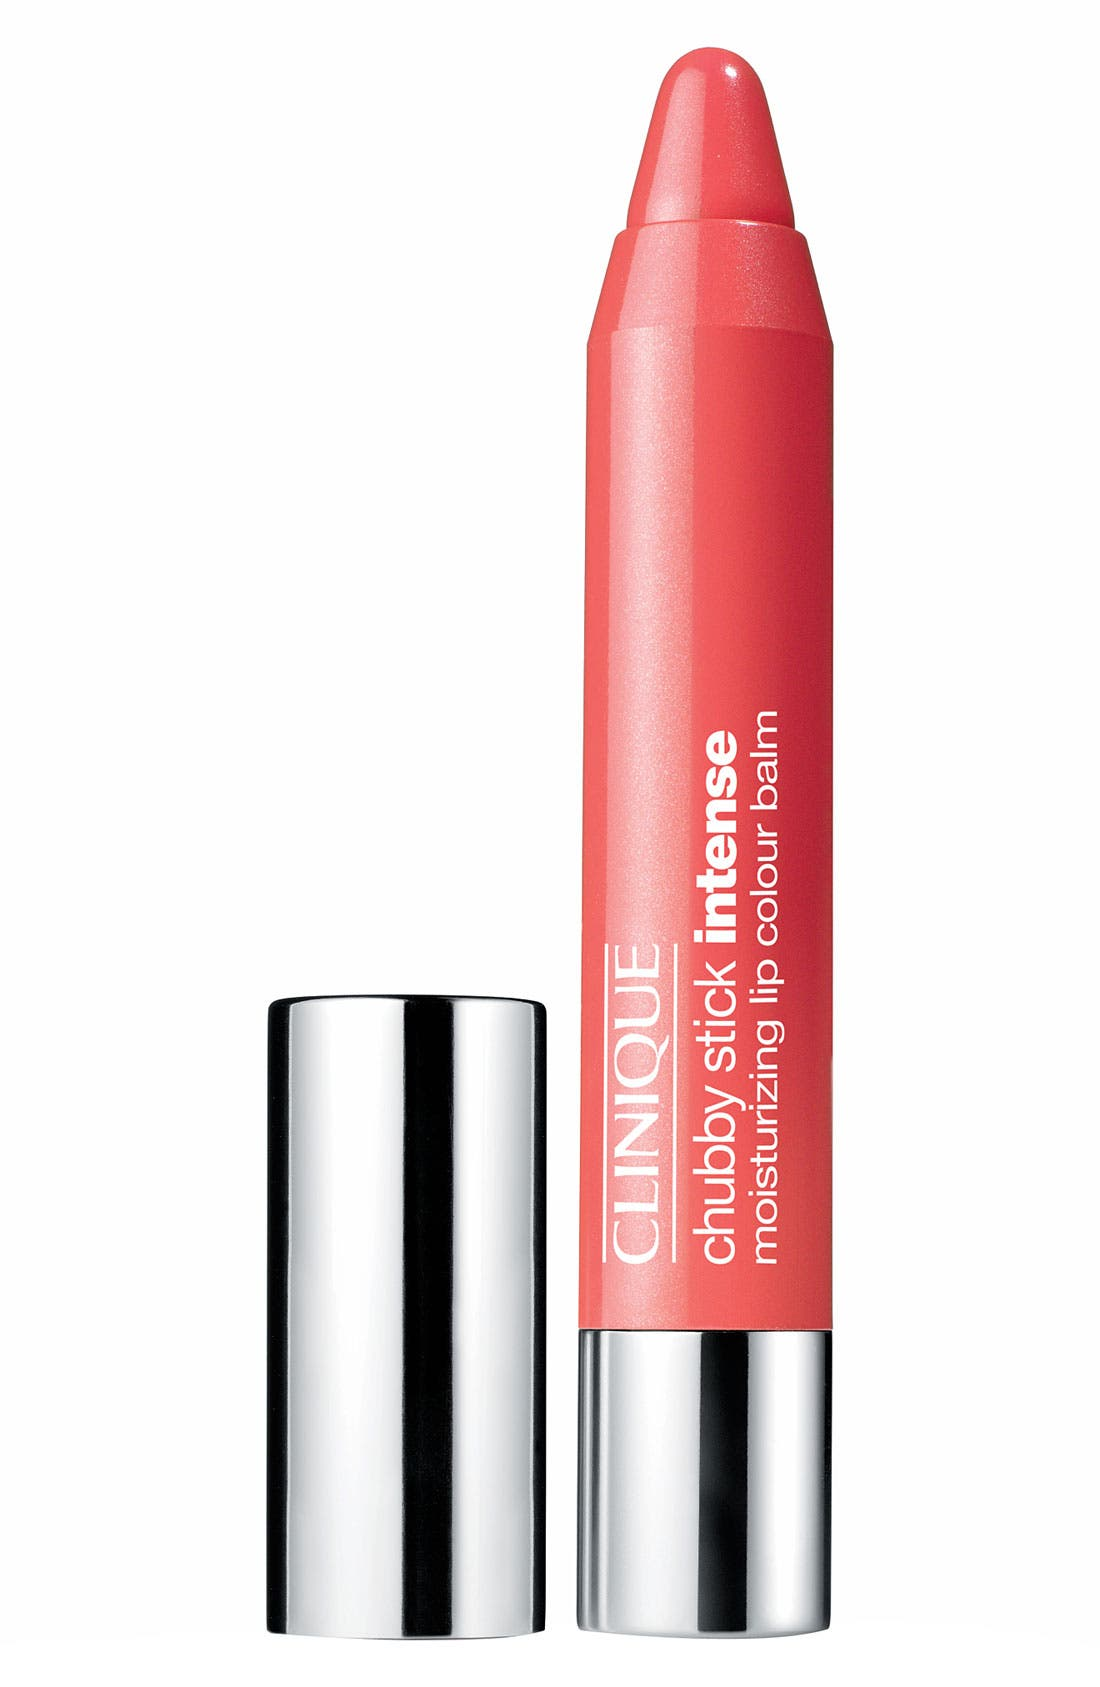 Clinique Chubby Stick Intense Moisturizing Lip Color Balm